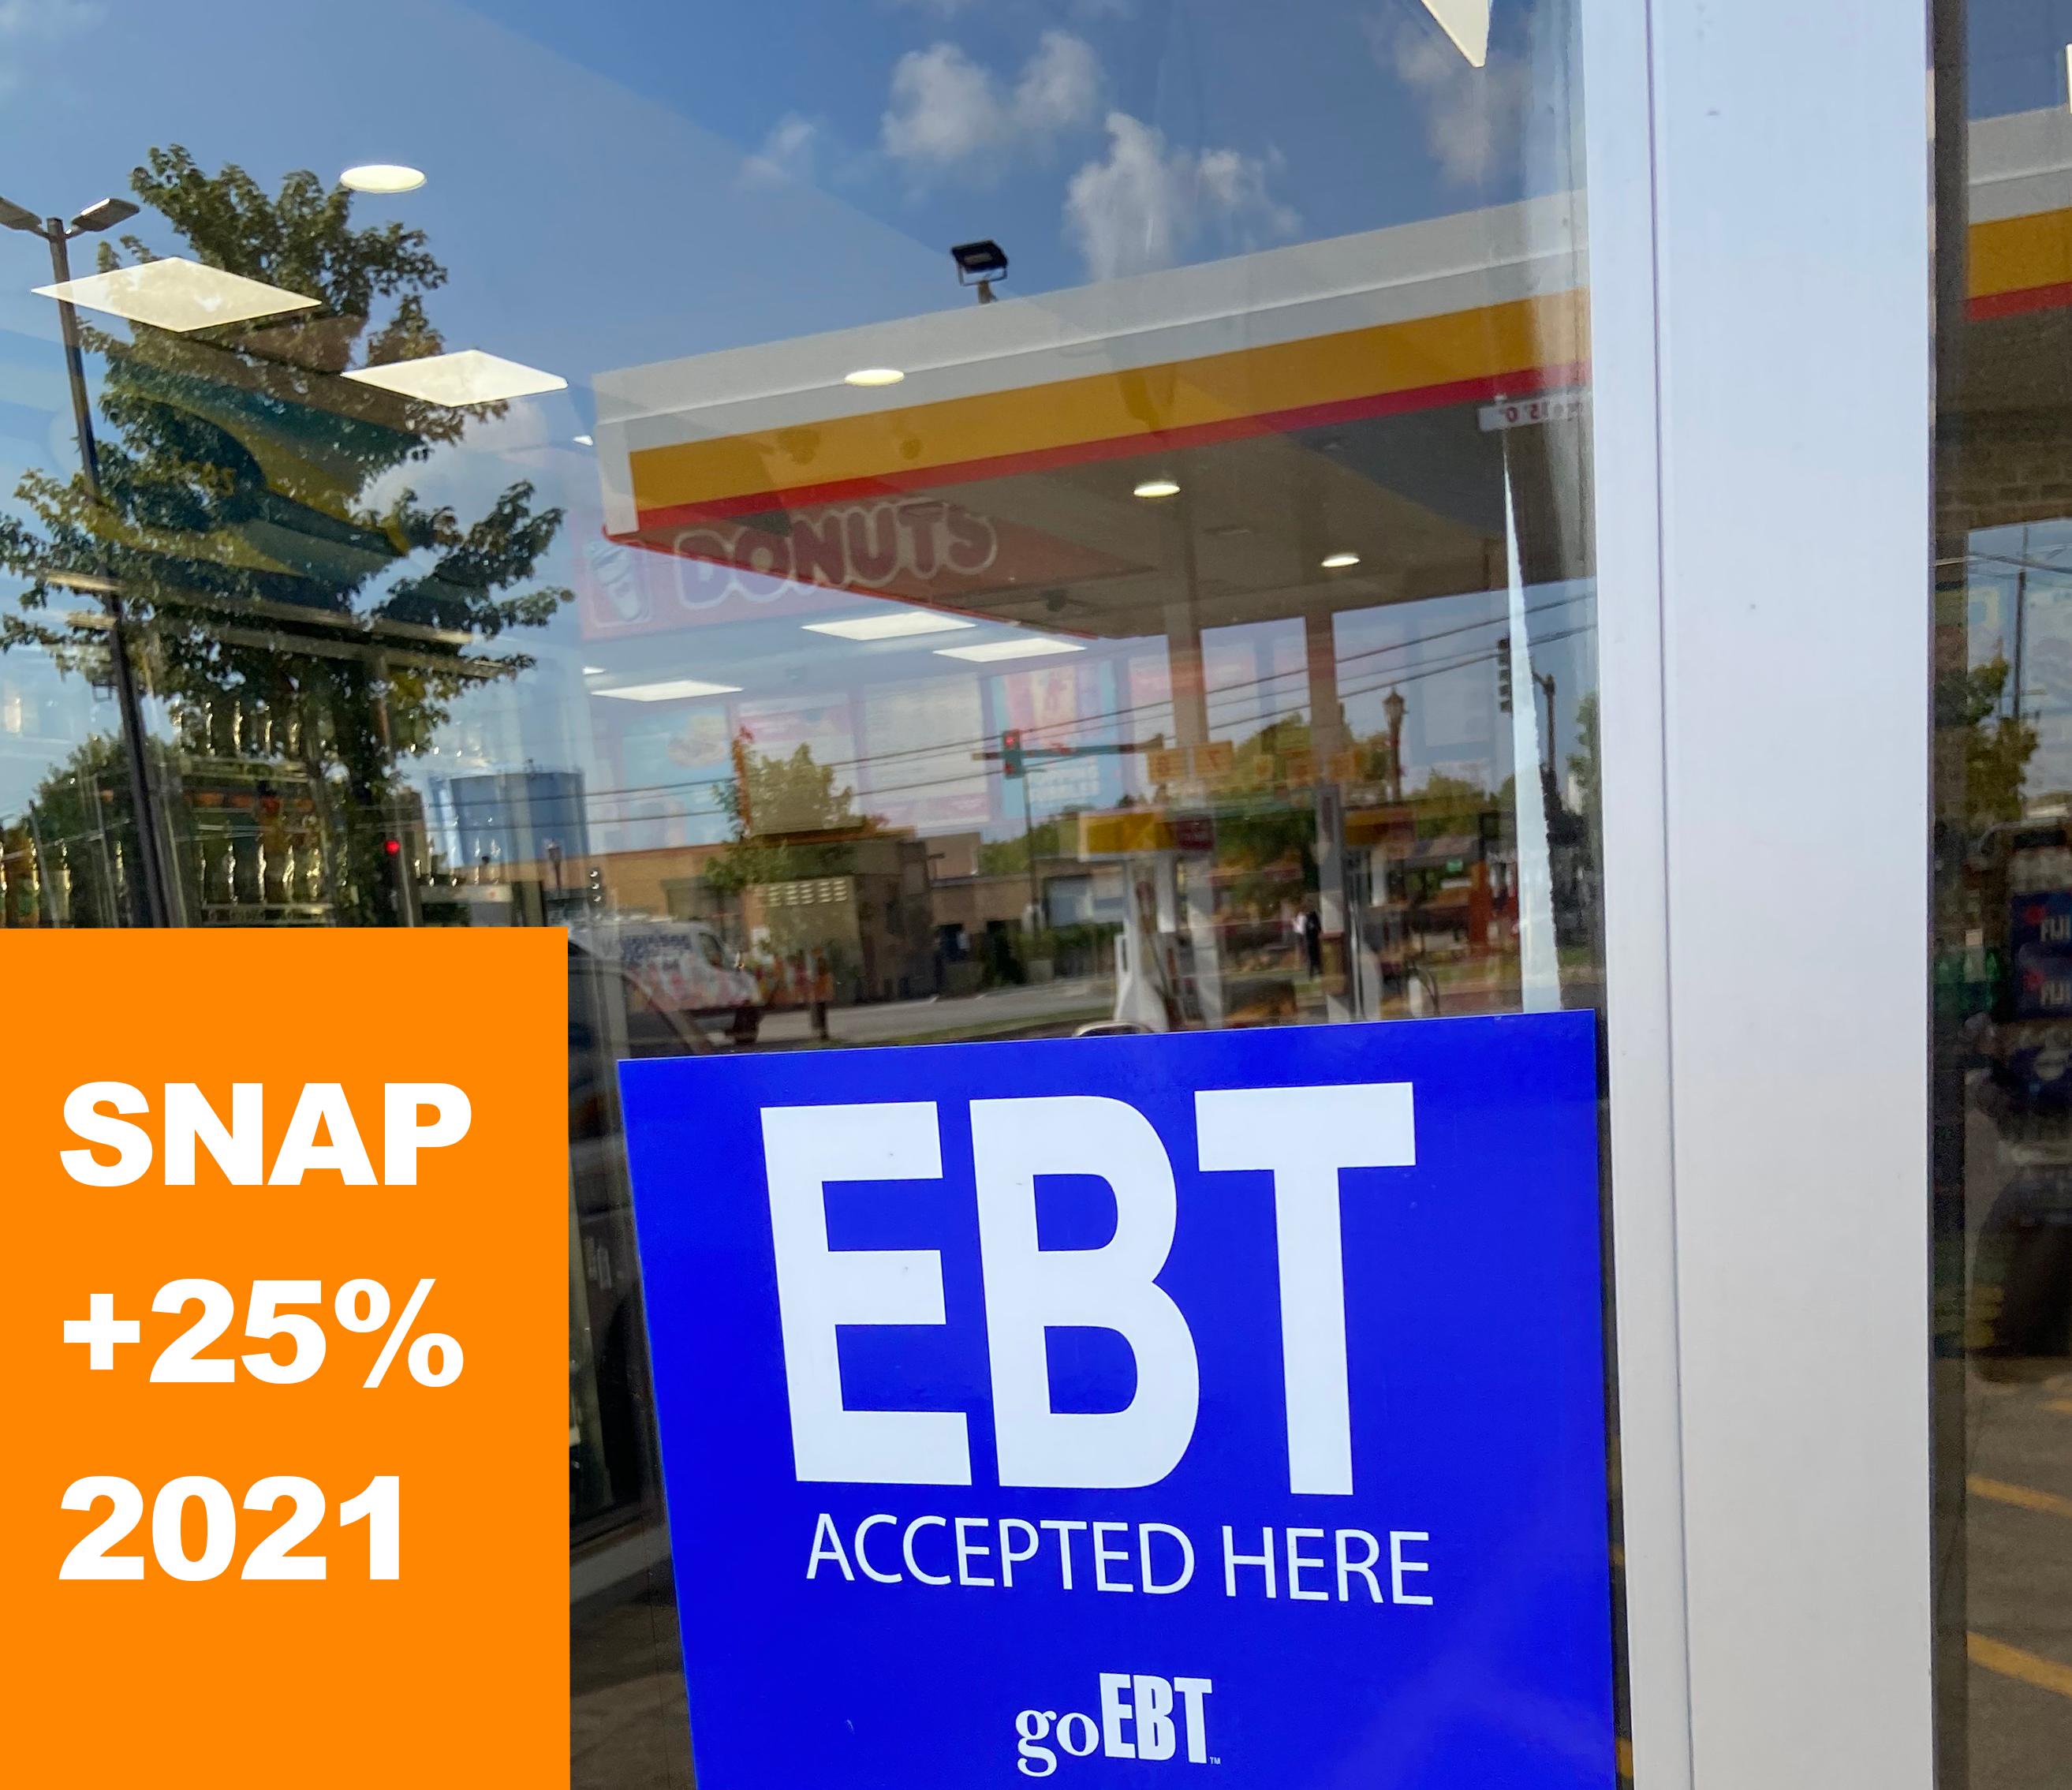 EBT accepted here sign from goEBT in store